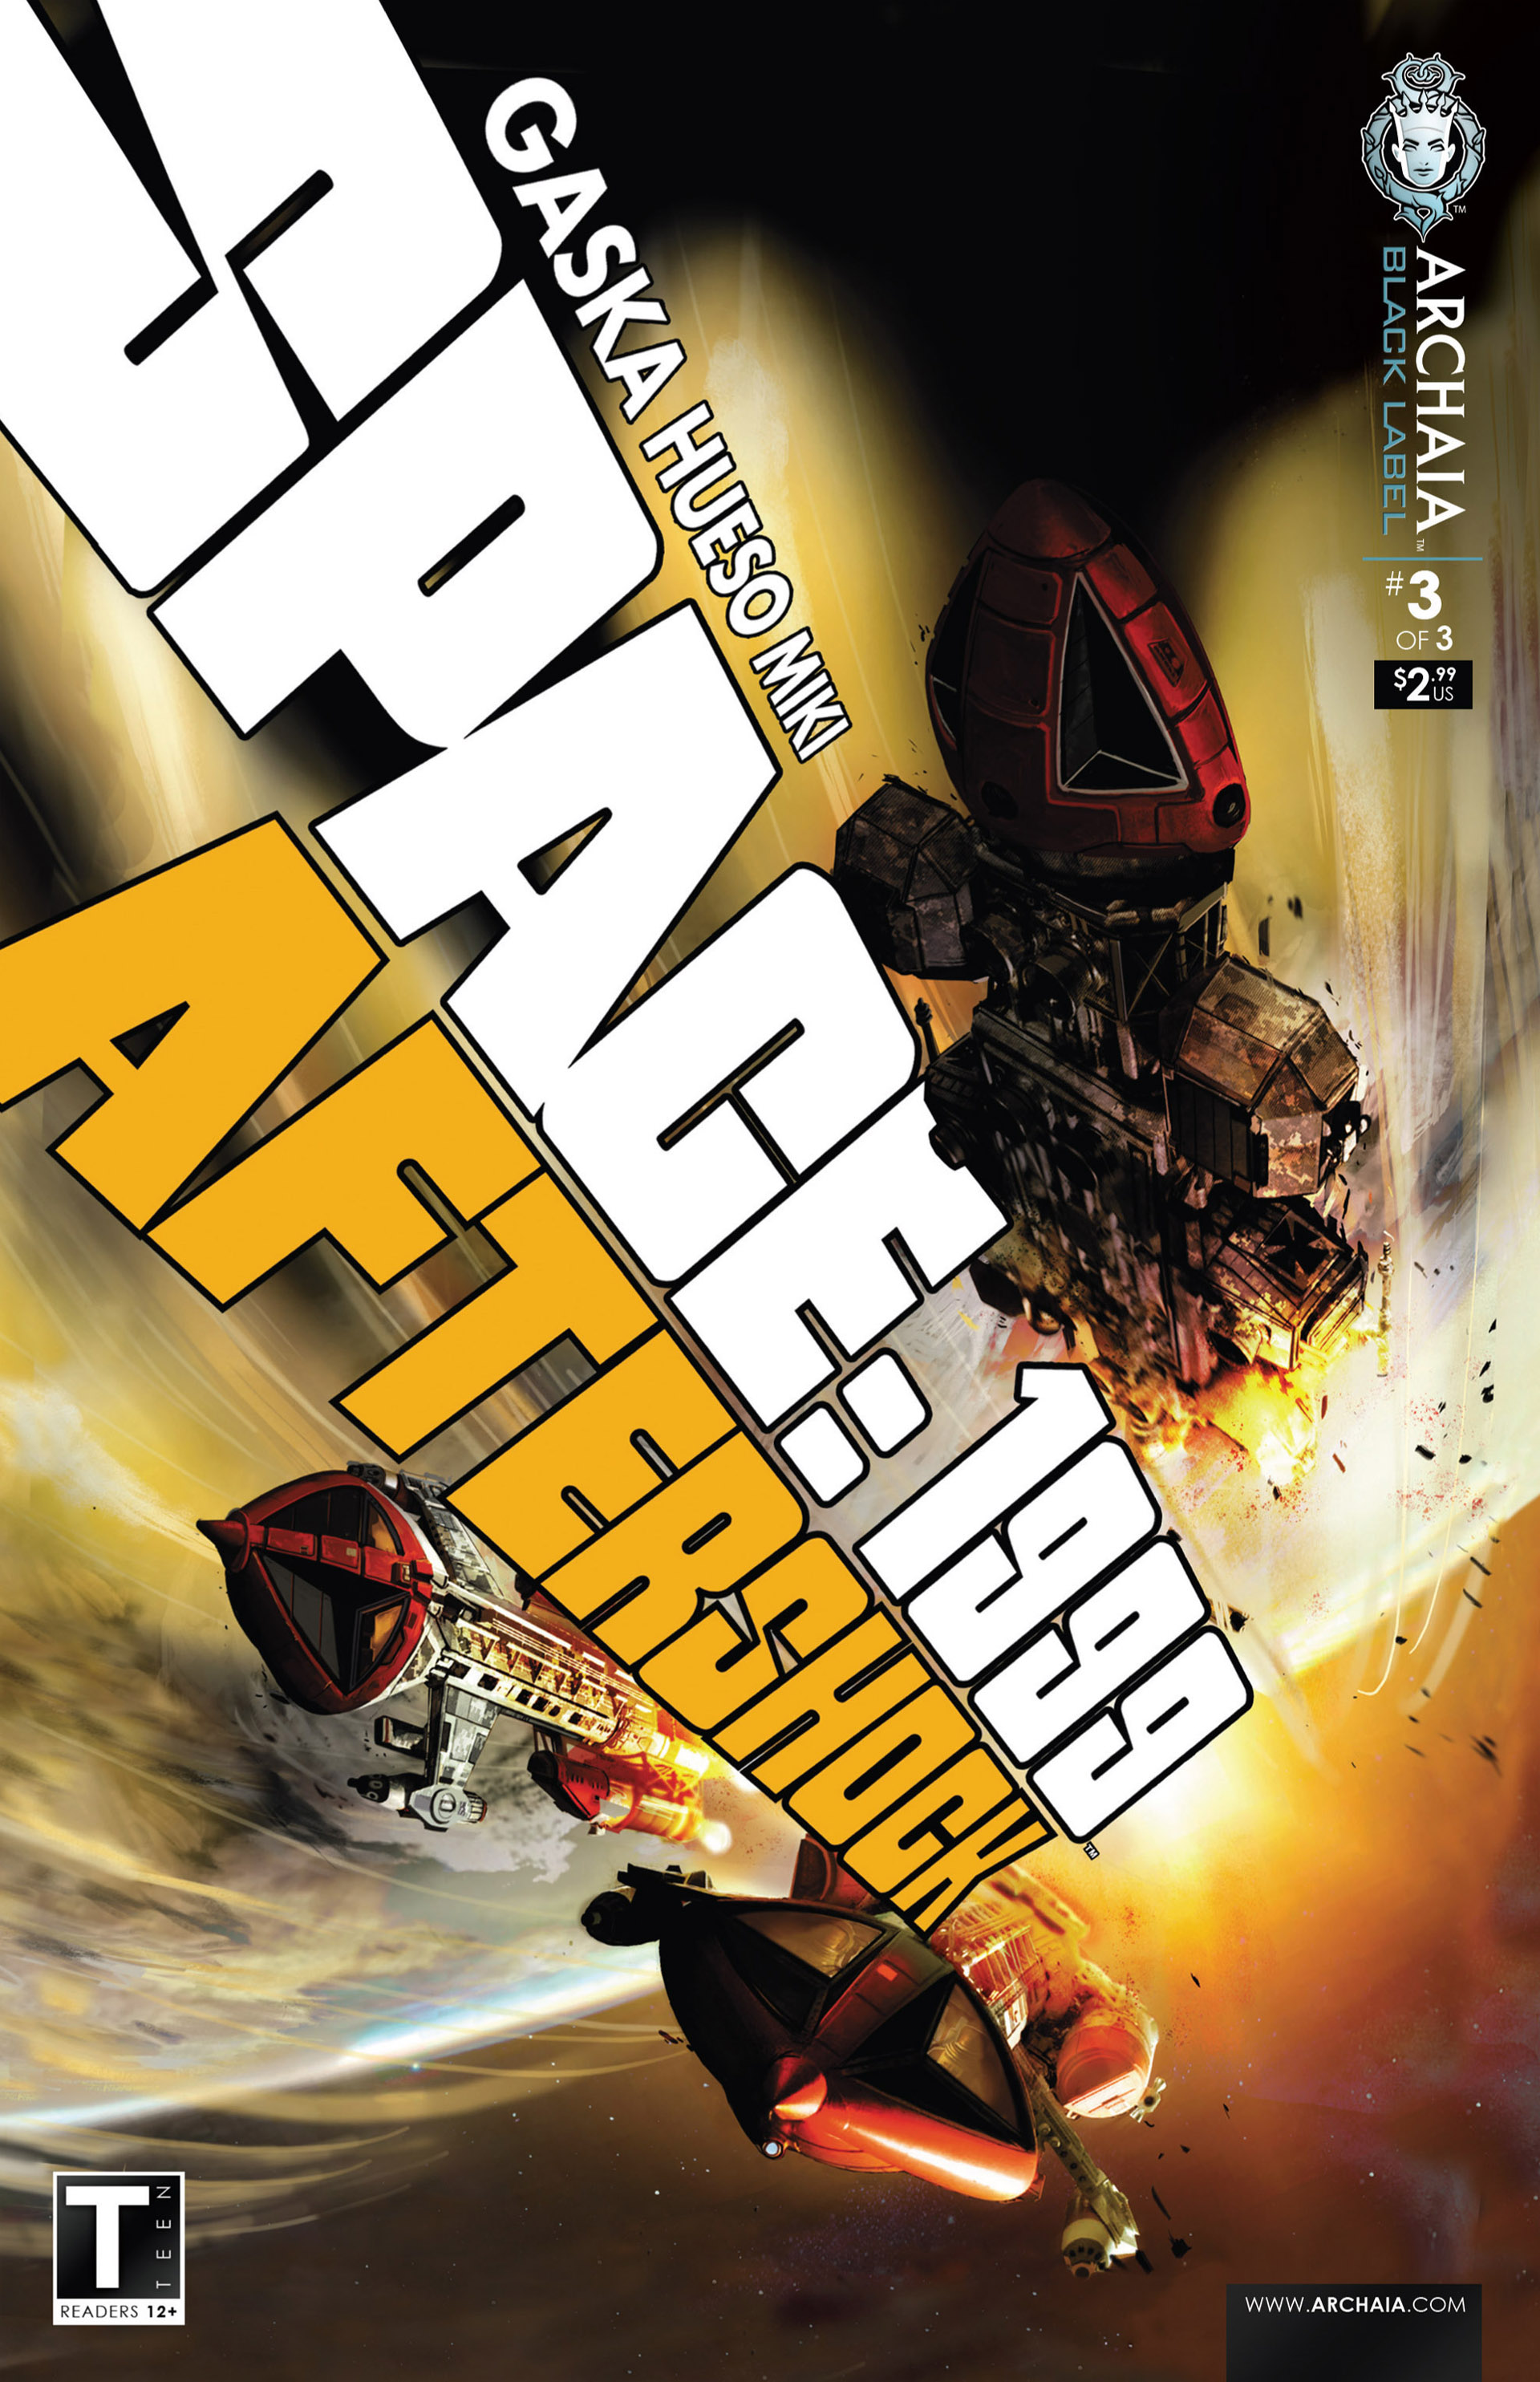 Read online Space: 1999: Aftershock comic -  Issue #3 - 1